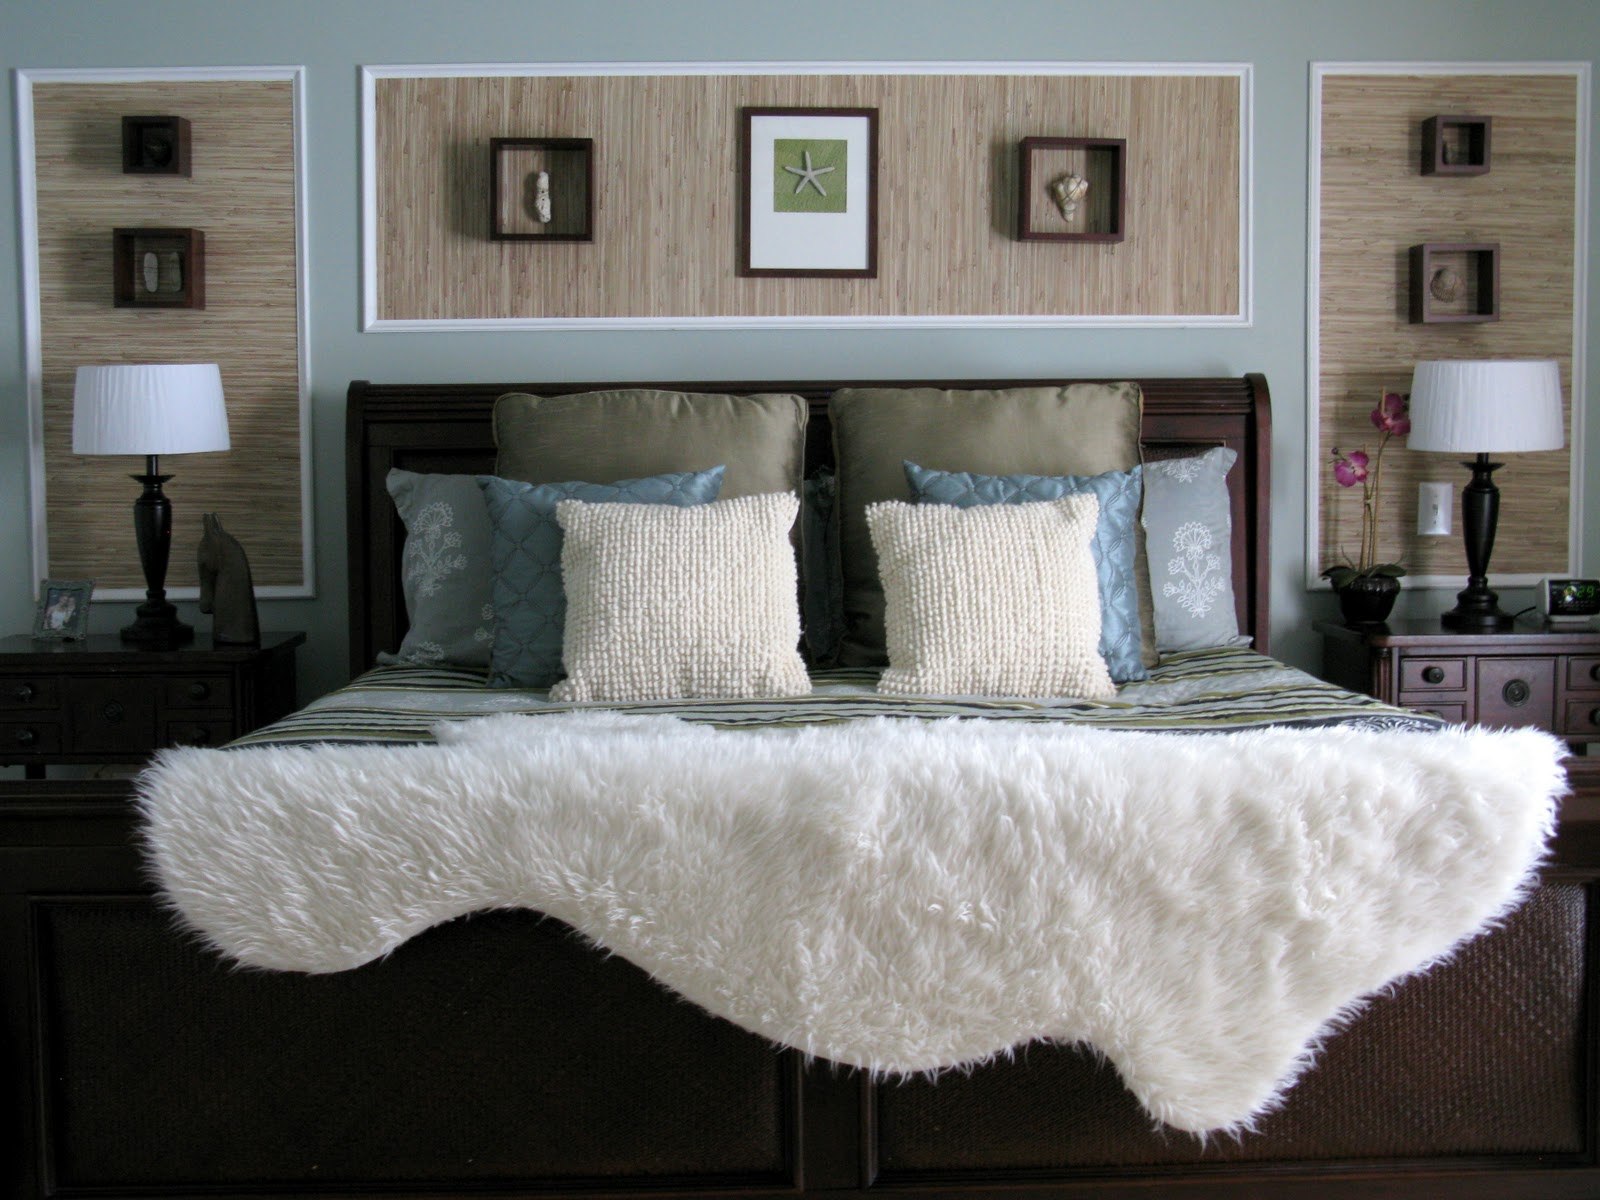 Wall Decor For Master Bedrooms : Loveyourroom voted one of the top bedrooms by houzz